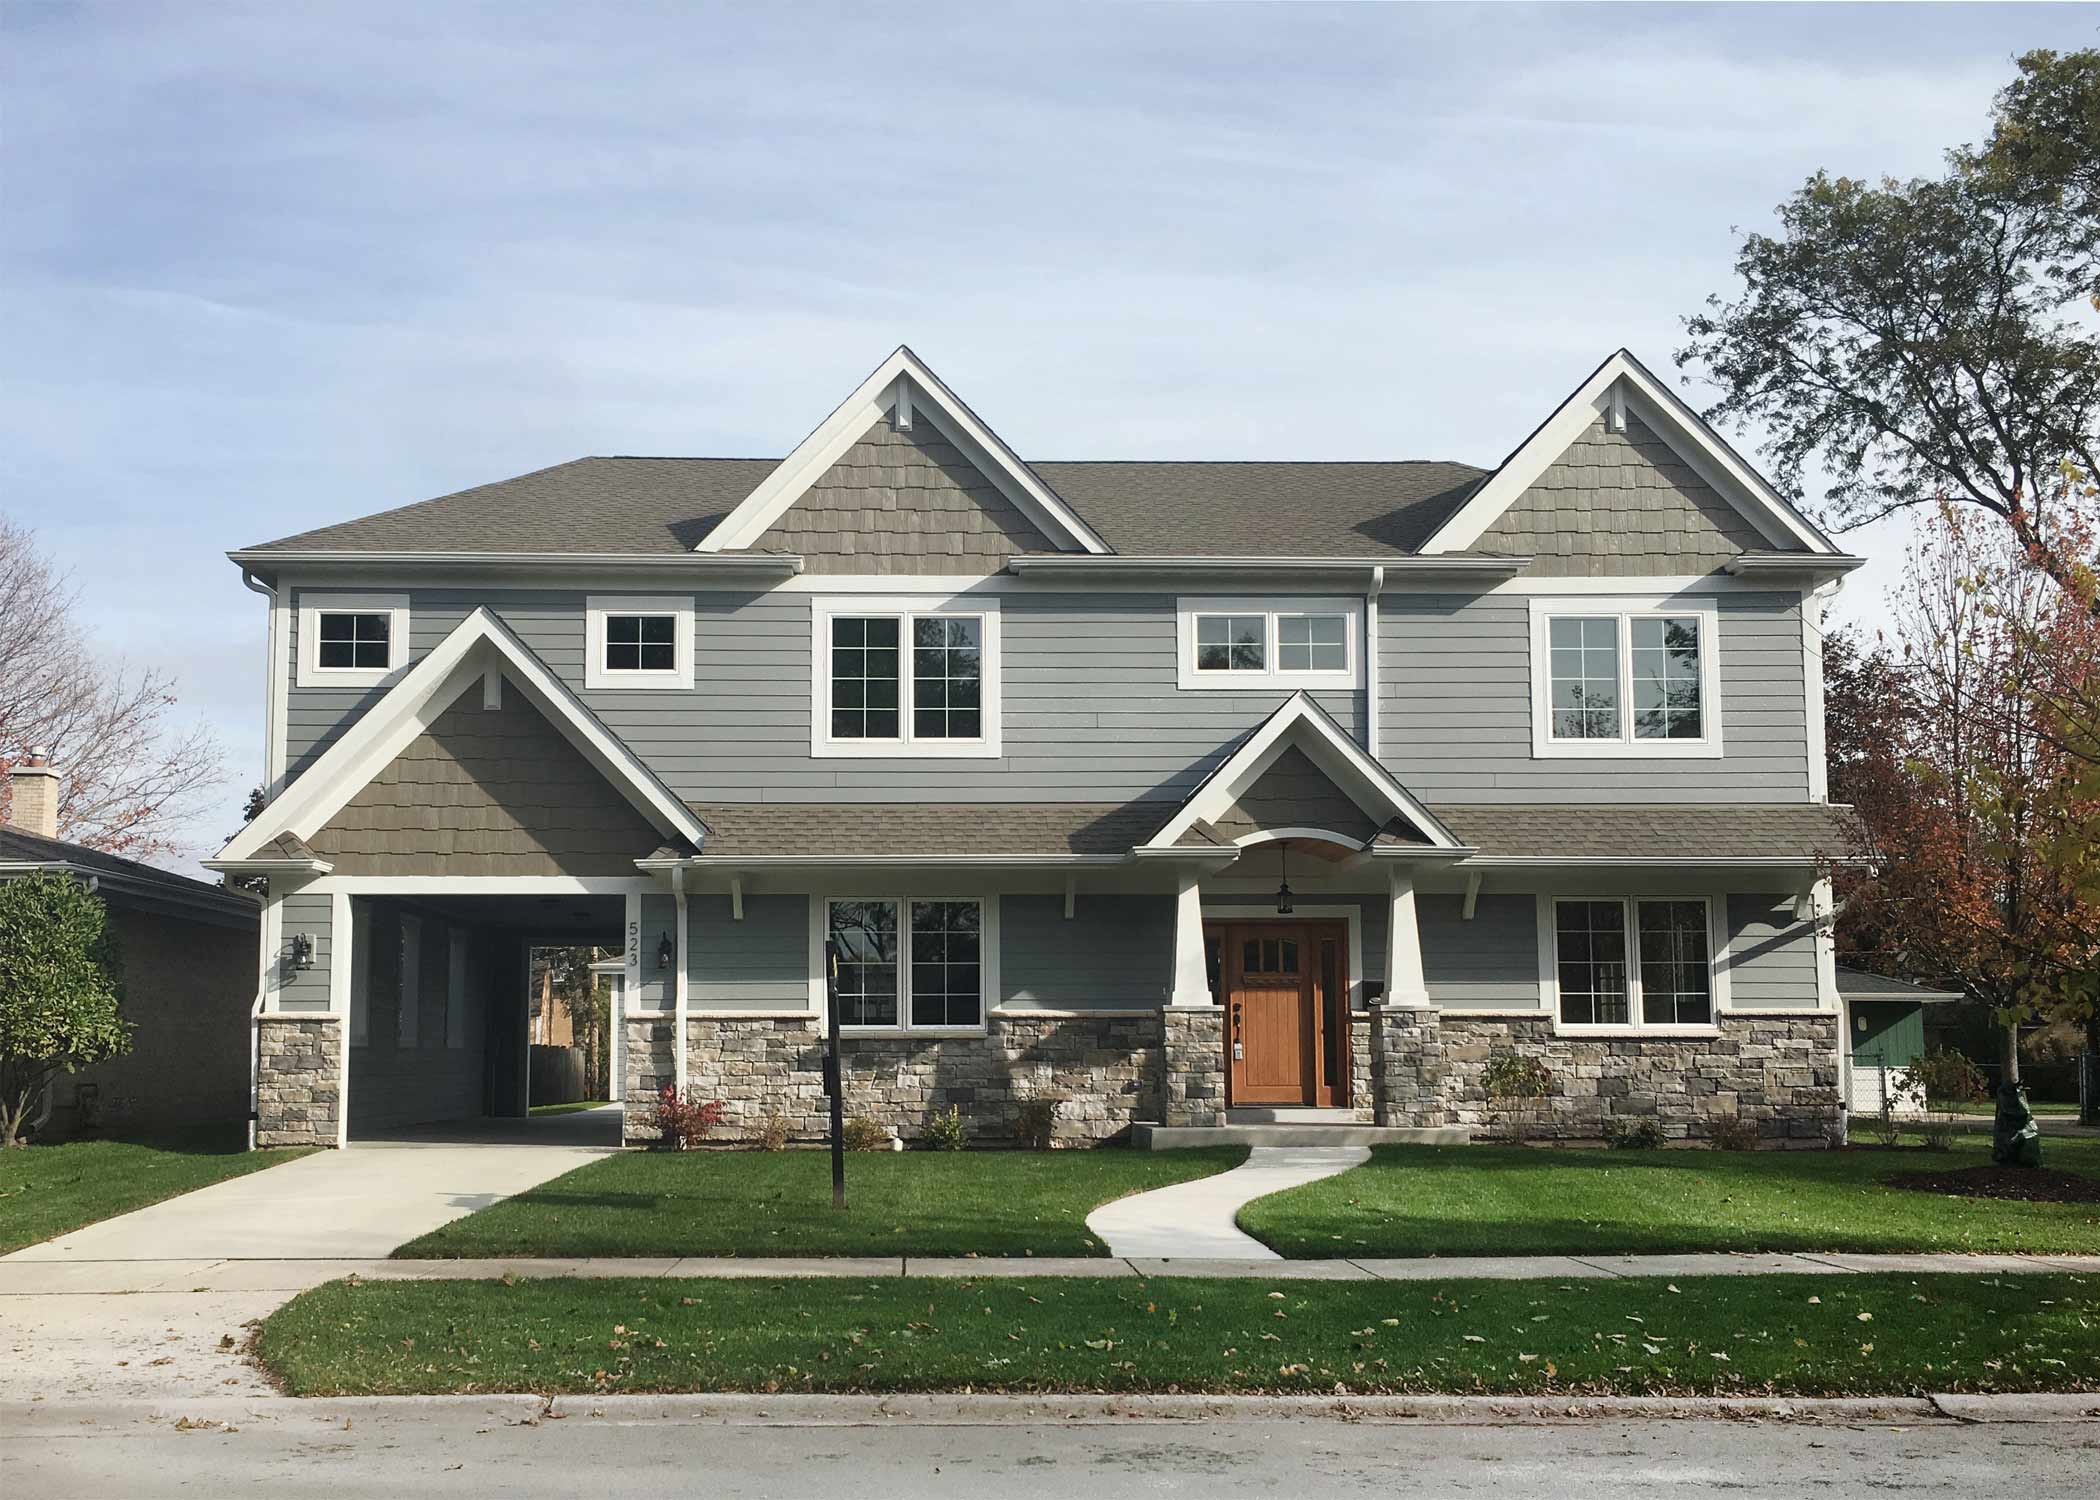 This is a picture of one of our completed projects